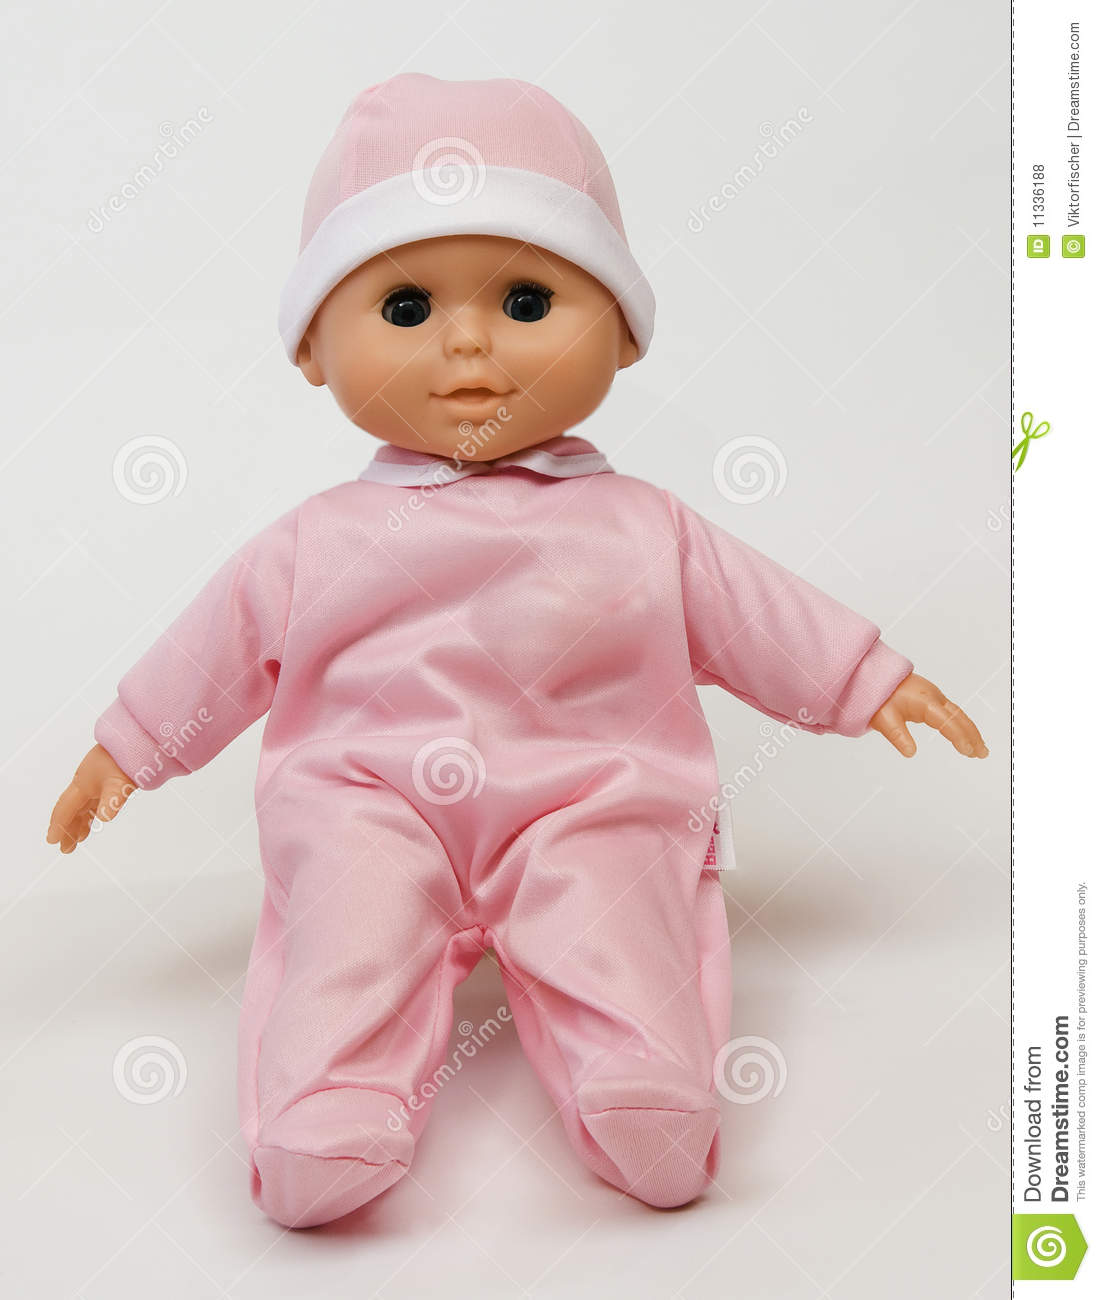 baby doll stock photo. image of pink, doll, baby, little - 11336188